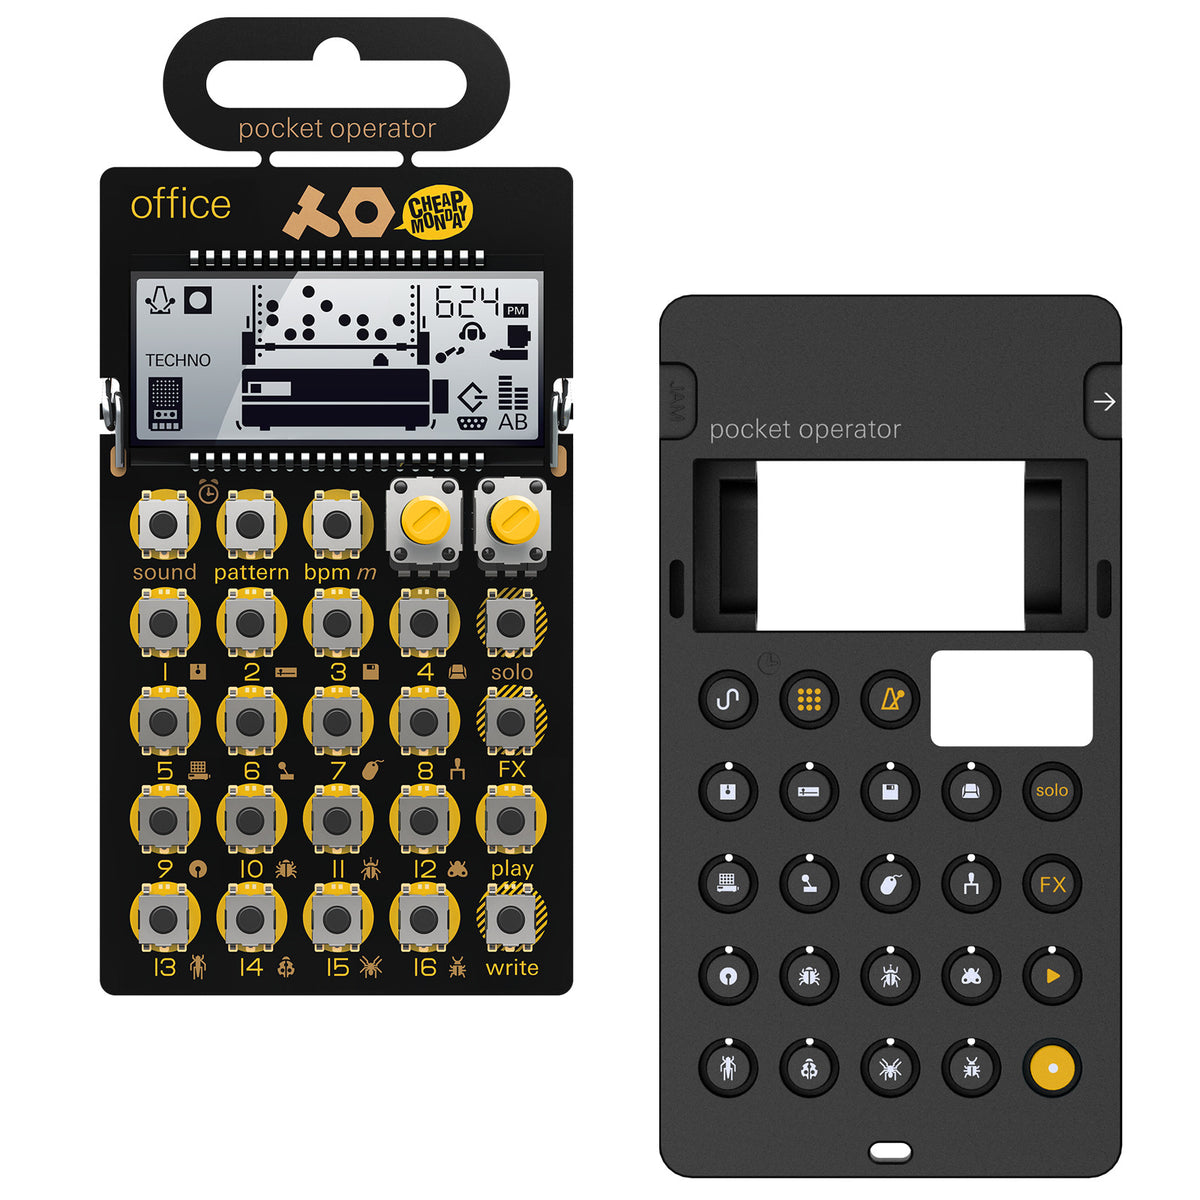 Teenage Engineering: PO-24 Office Pocket Operator + Silicone Case Bundle